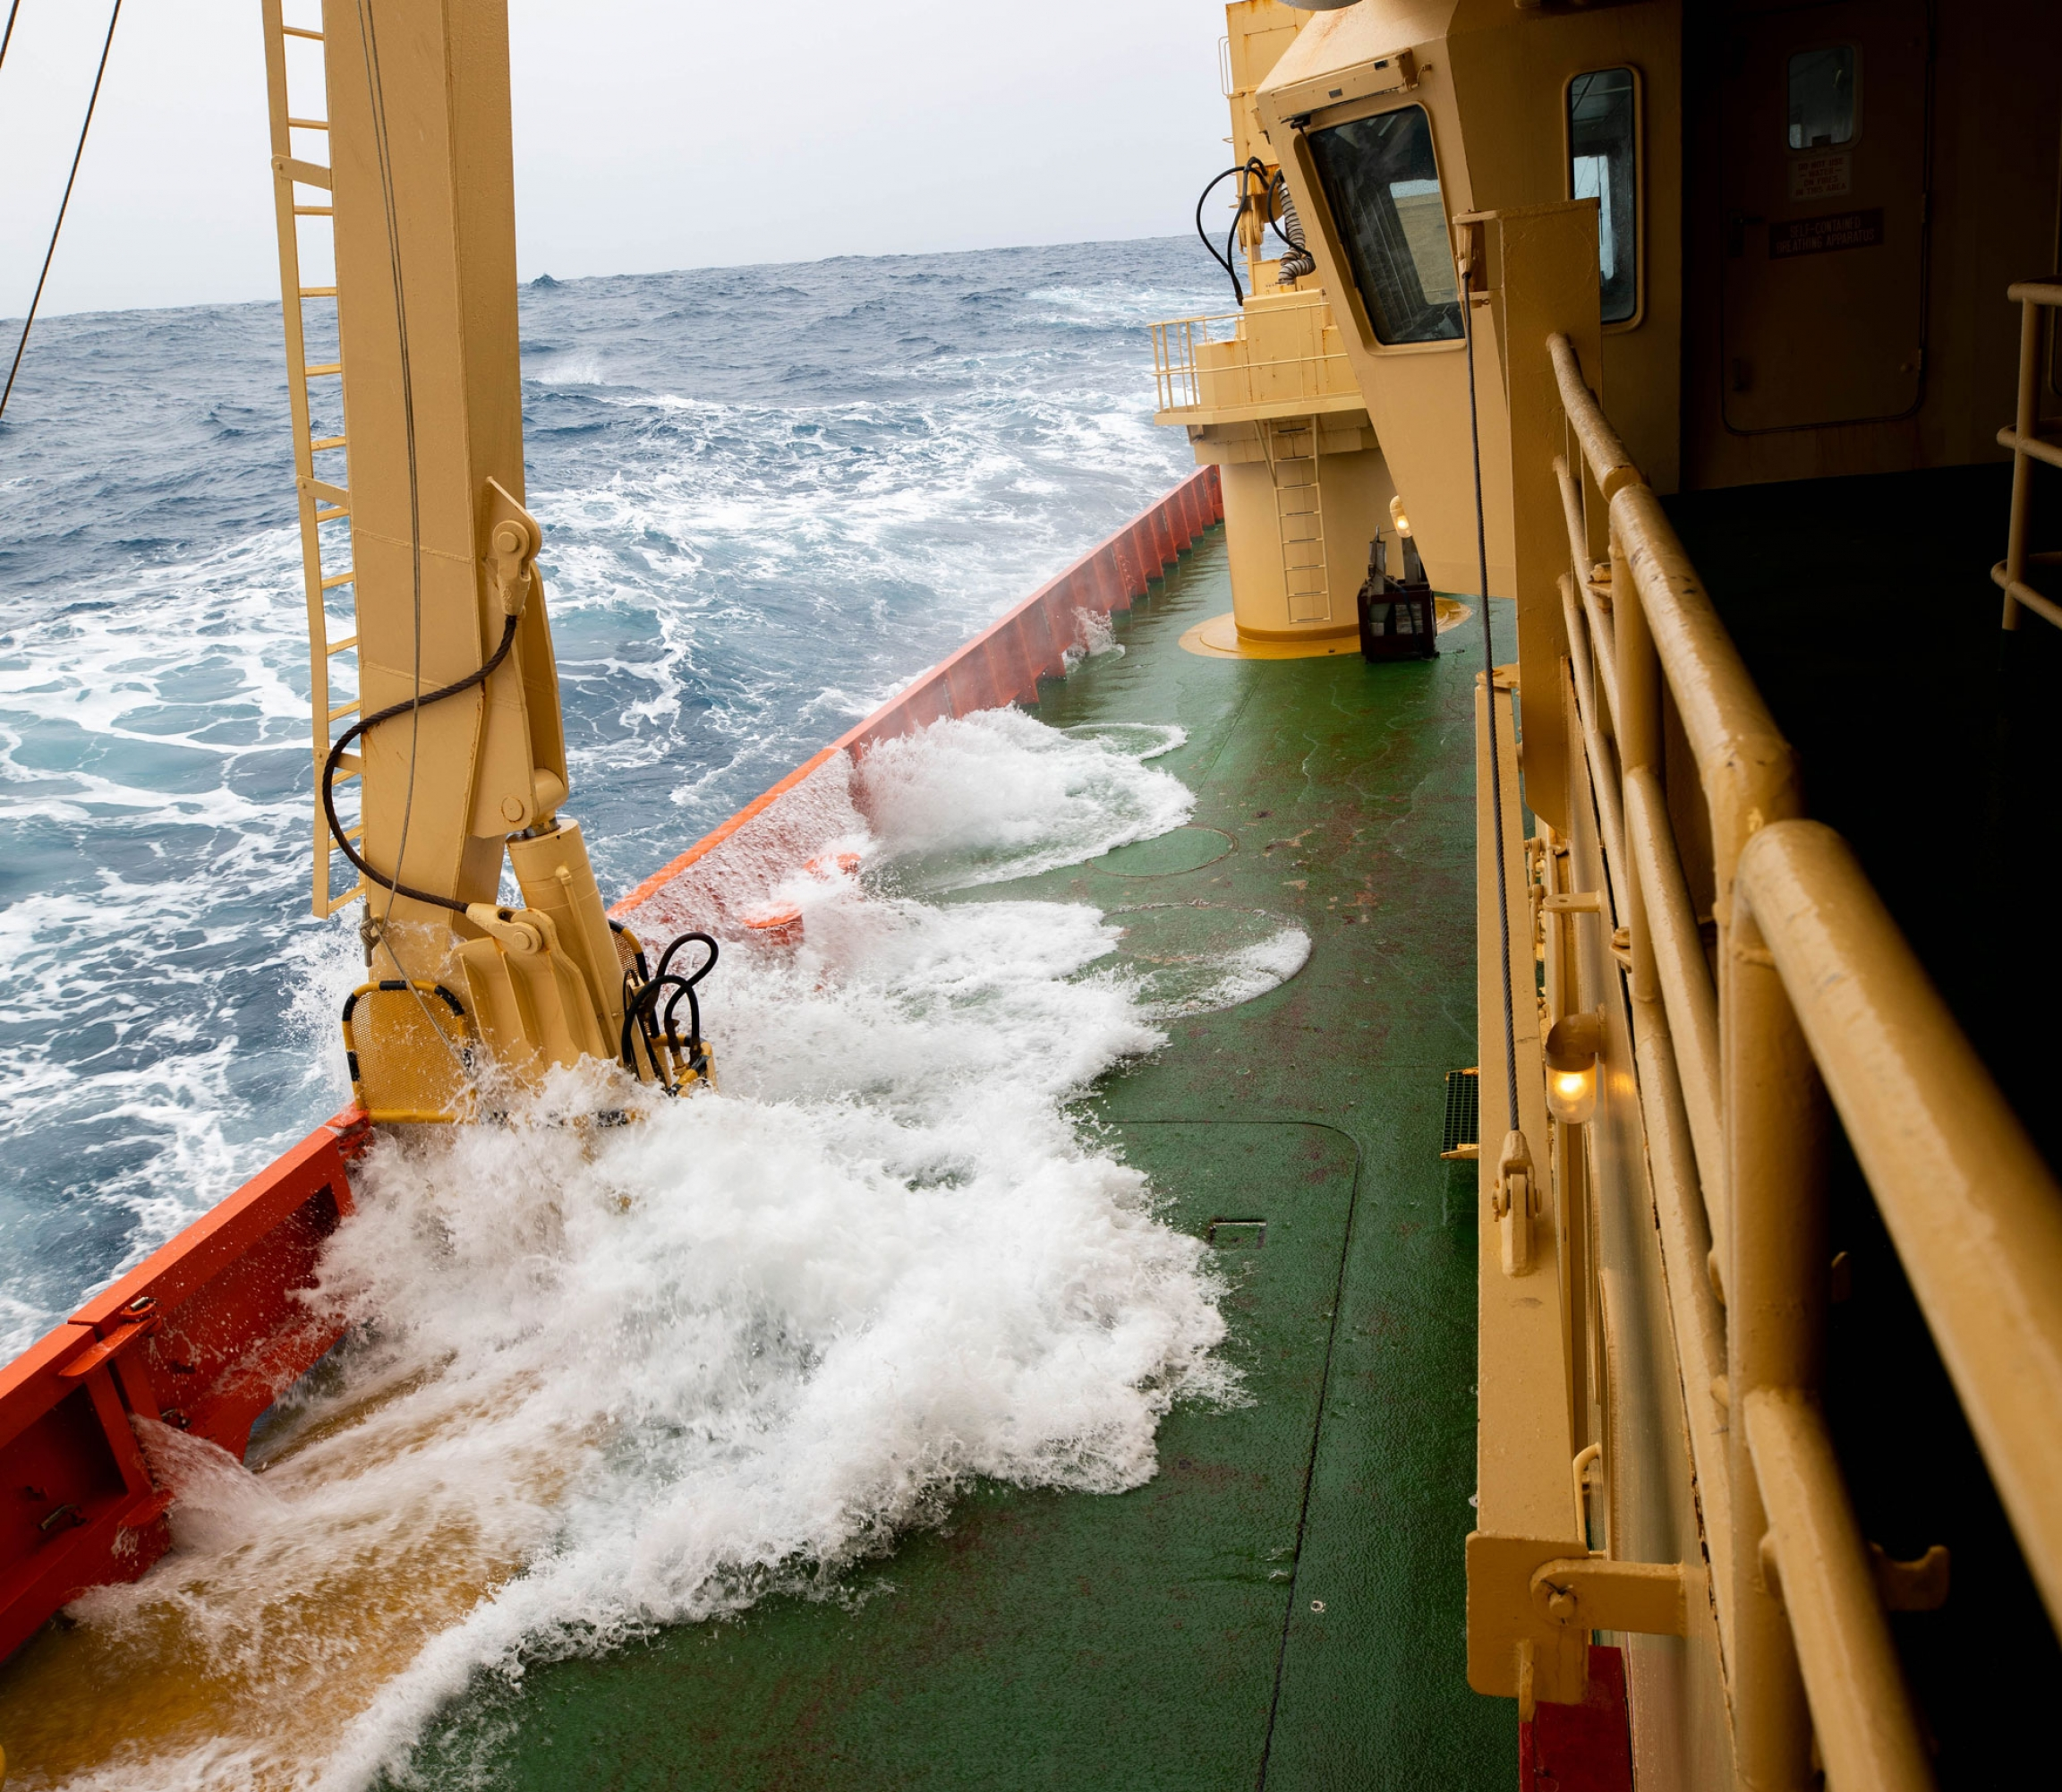 Waves are shown crashing against the side of the ship and spilling water on to the deck.